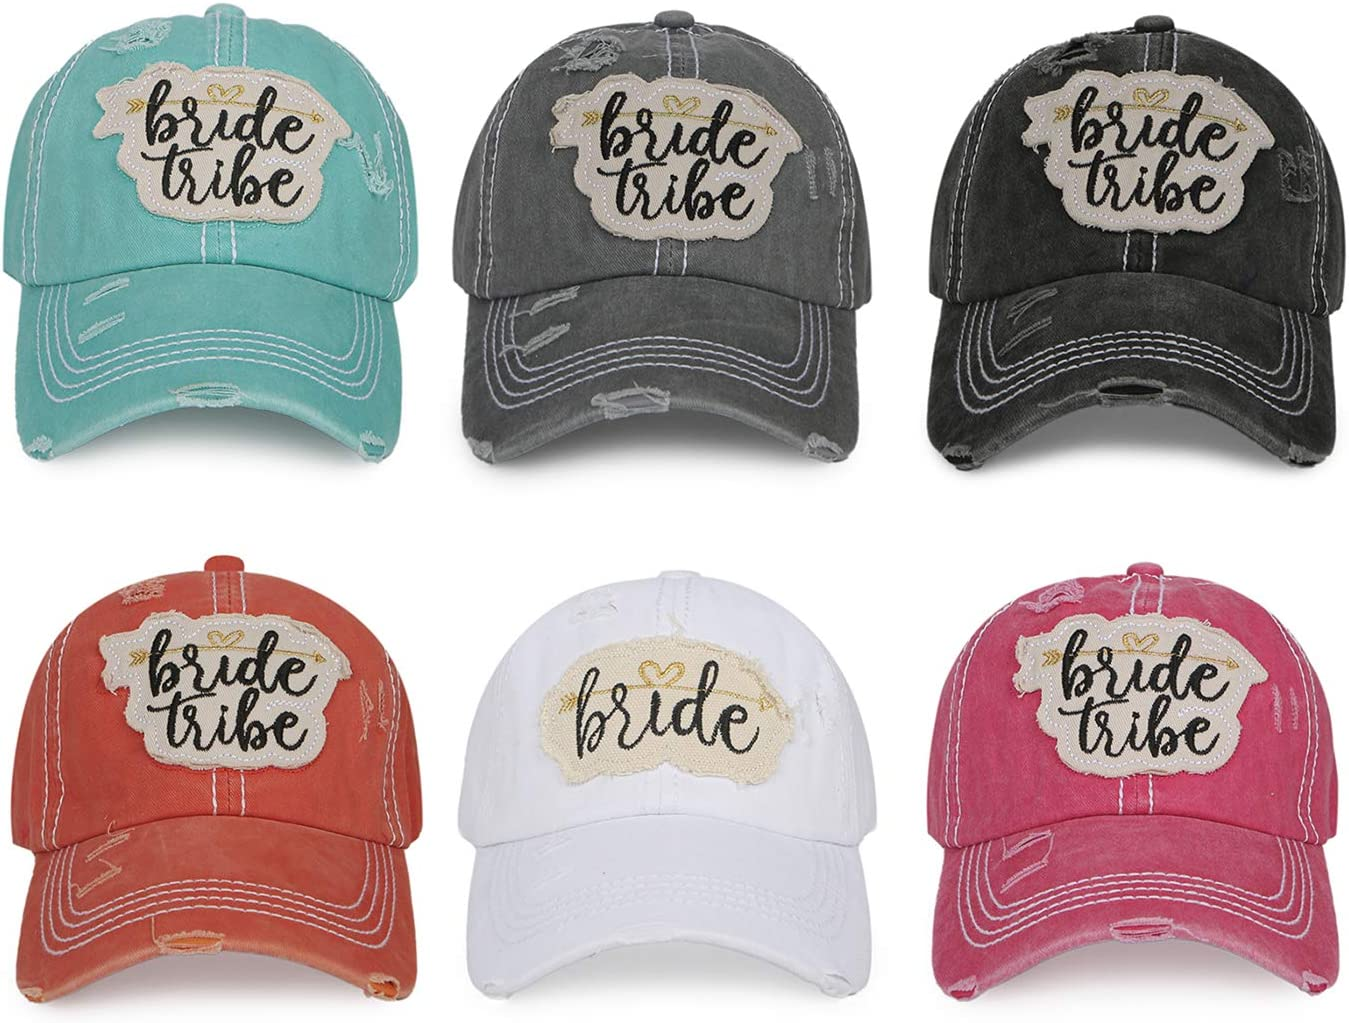 Bride Tribe Bachelorette Party Women's Bridal Baseball Caps Distressed Washed Vintage Embroidered Wedding Party Hats